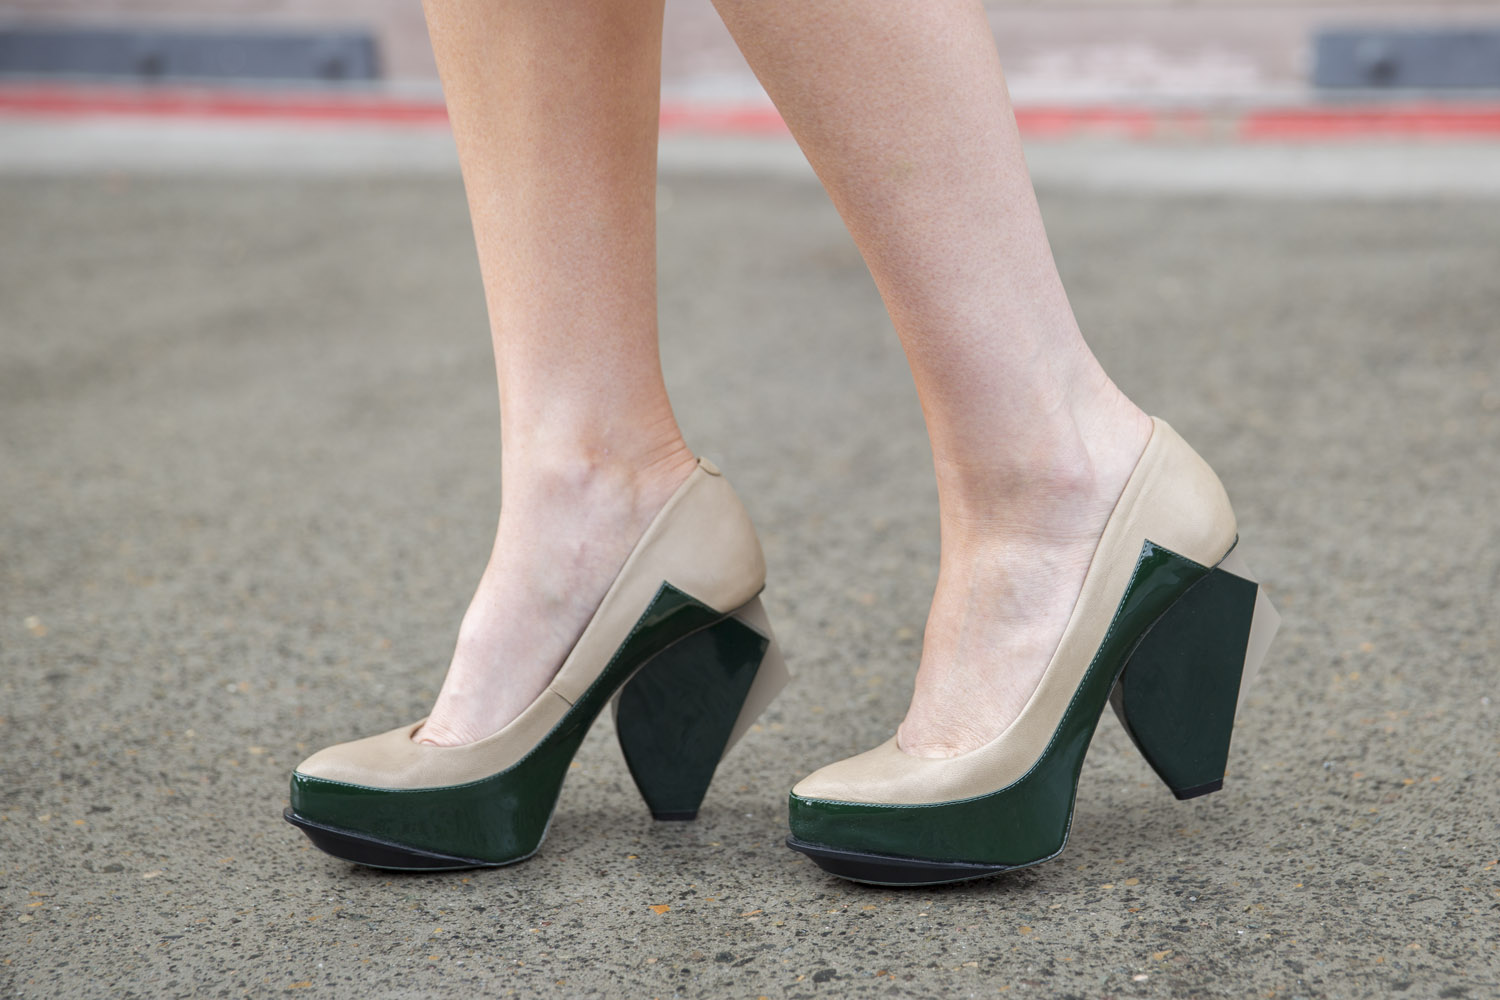 Abcense shoes